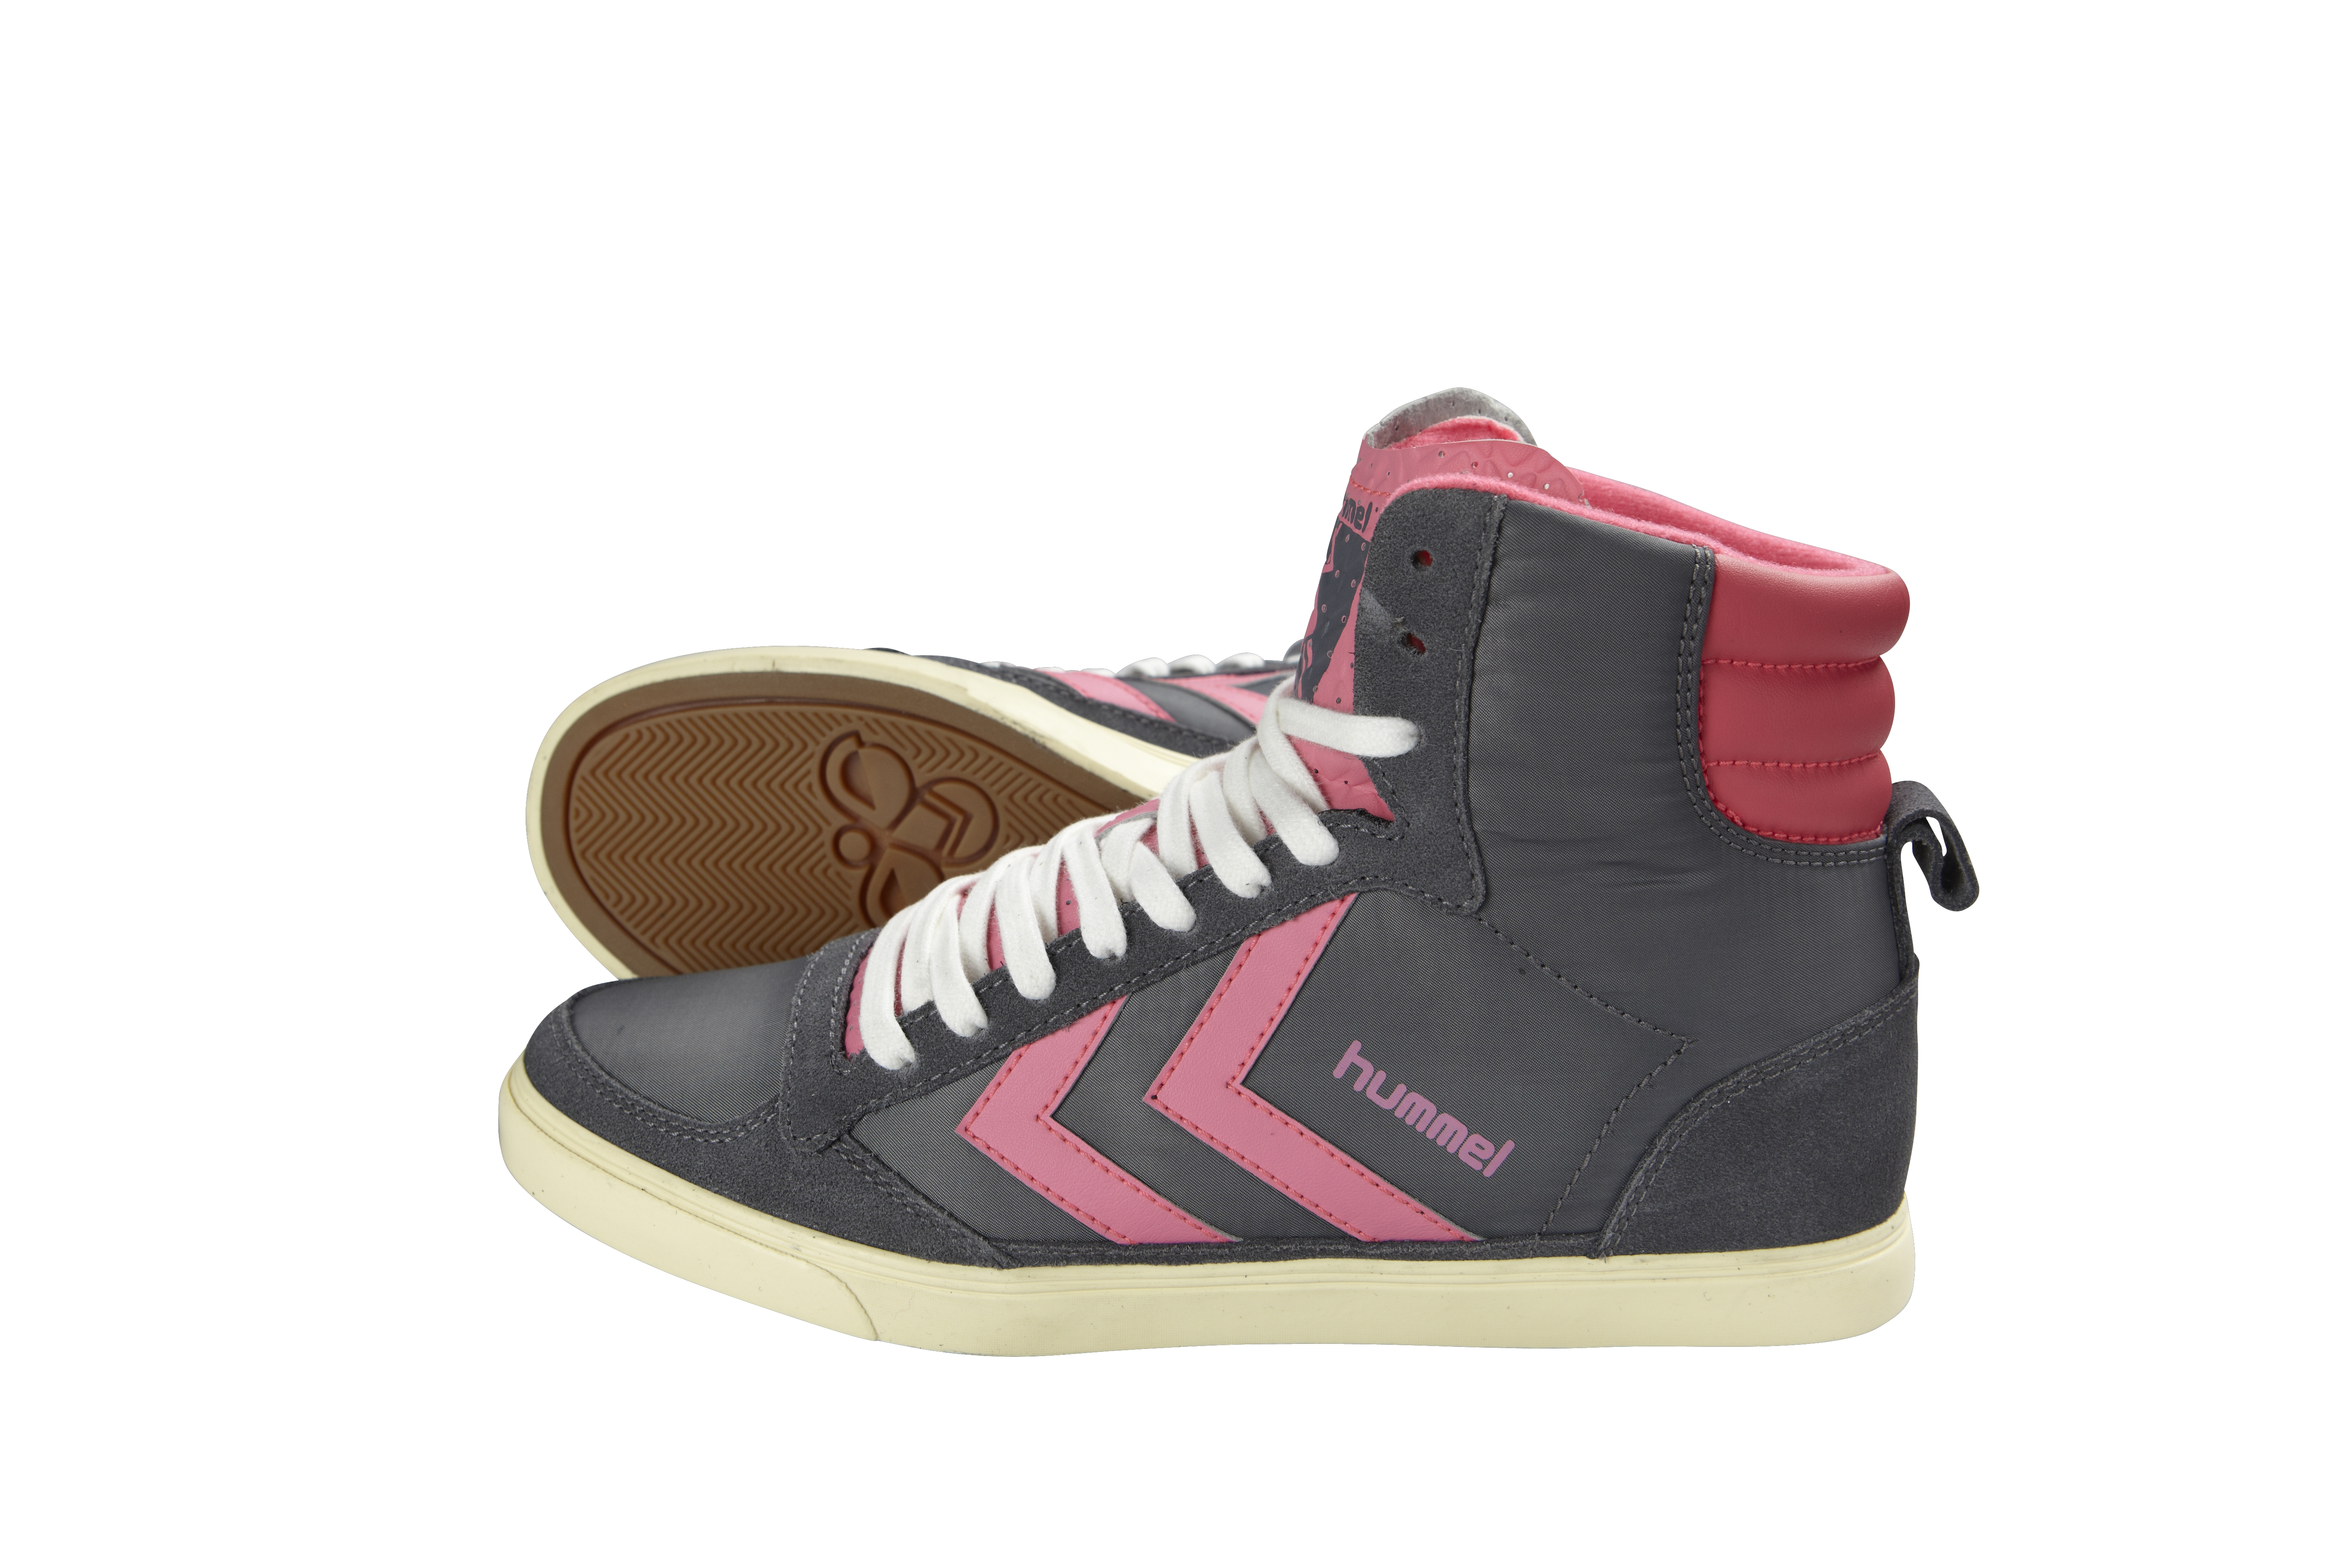 HUMMEL SNEAKER STADIL HIGH RETRO